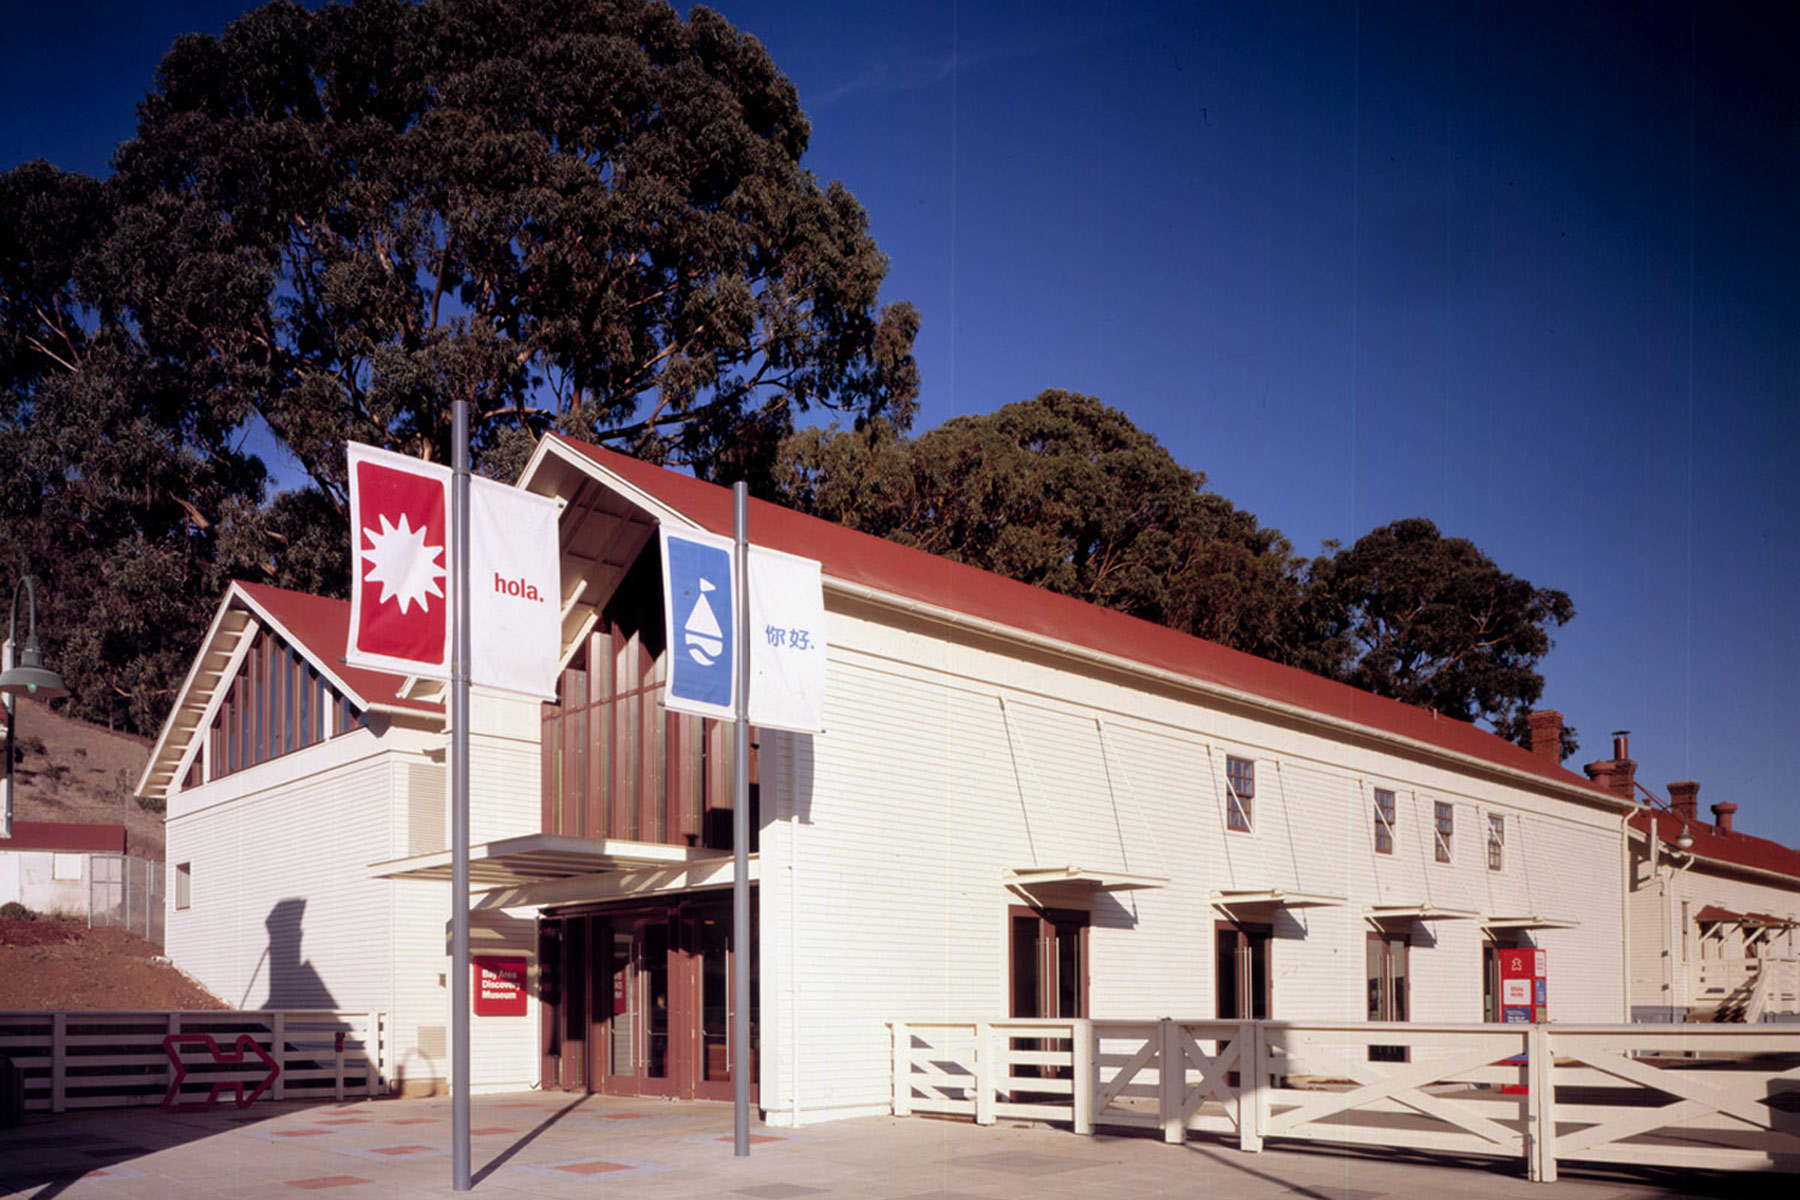 The Bay Area Discovery Museum campus in Sausalito, a nationally recognized children's museum, has been renovated and expanded to sensitively integrate a new theater building and exhibit areas within the historic context of Fort Baker.